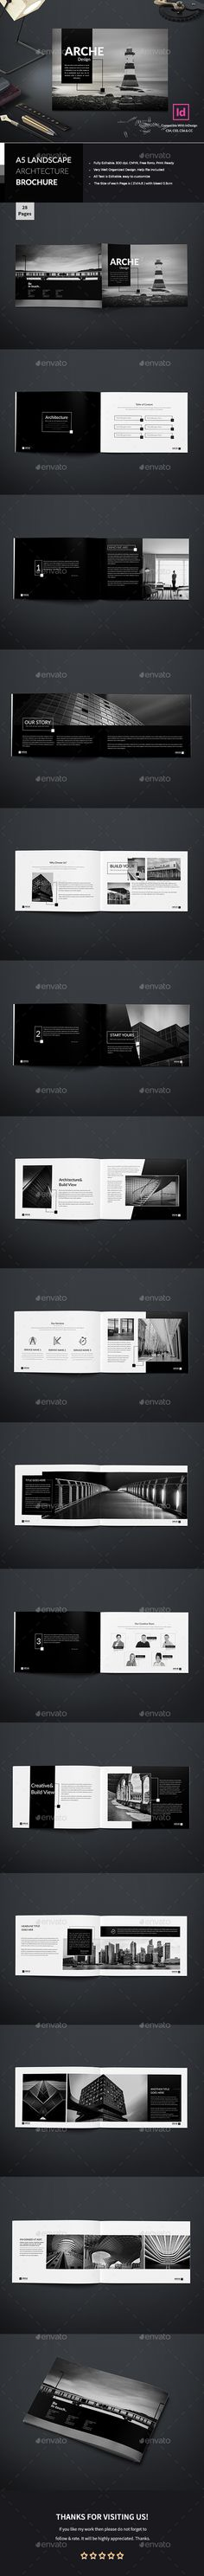 Landscape Architecture Brochure — InDesign INDD #minimal #architecture • Download ➝ https://graphicriver.net/item/landscape-architecture-brochure/20334746?ref=pxcr